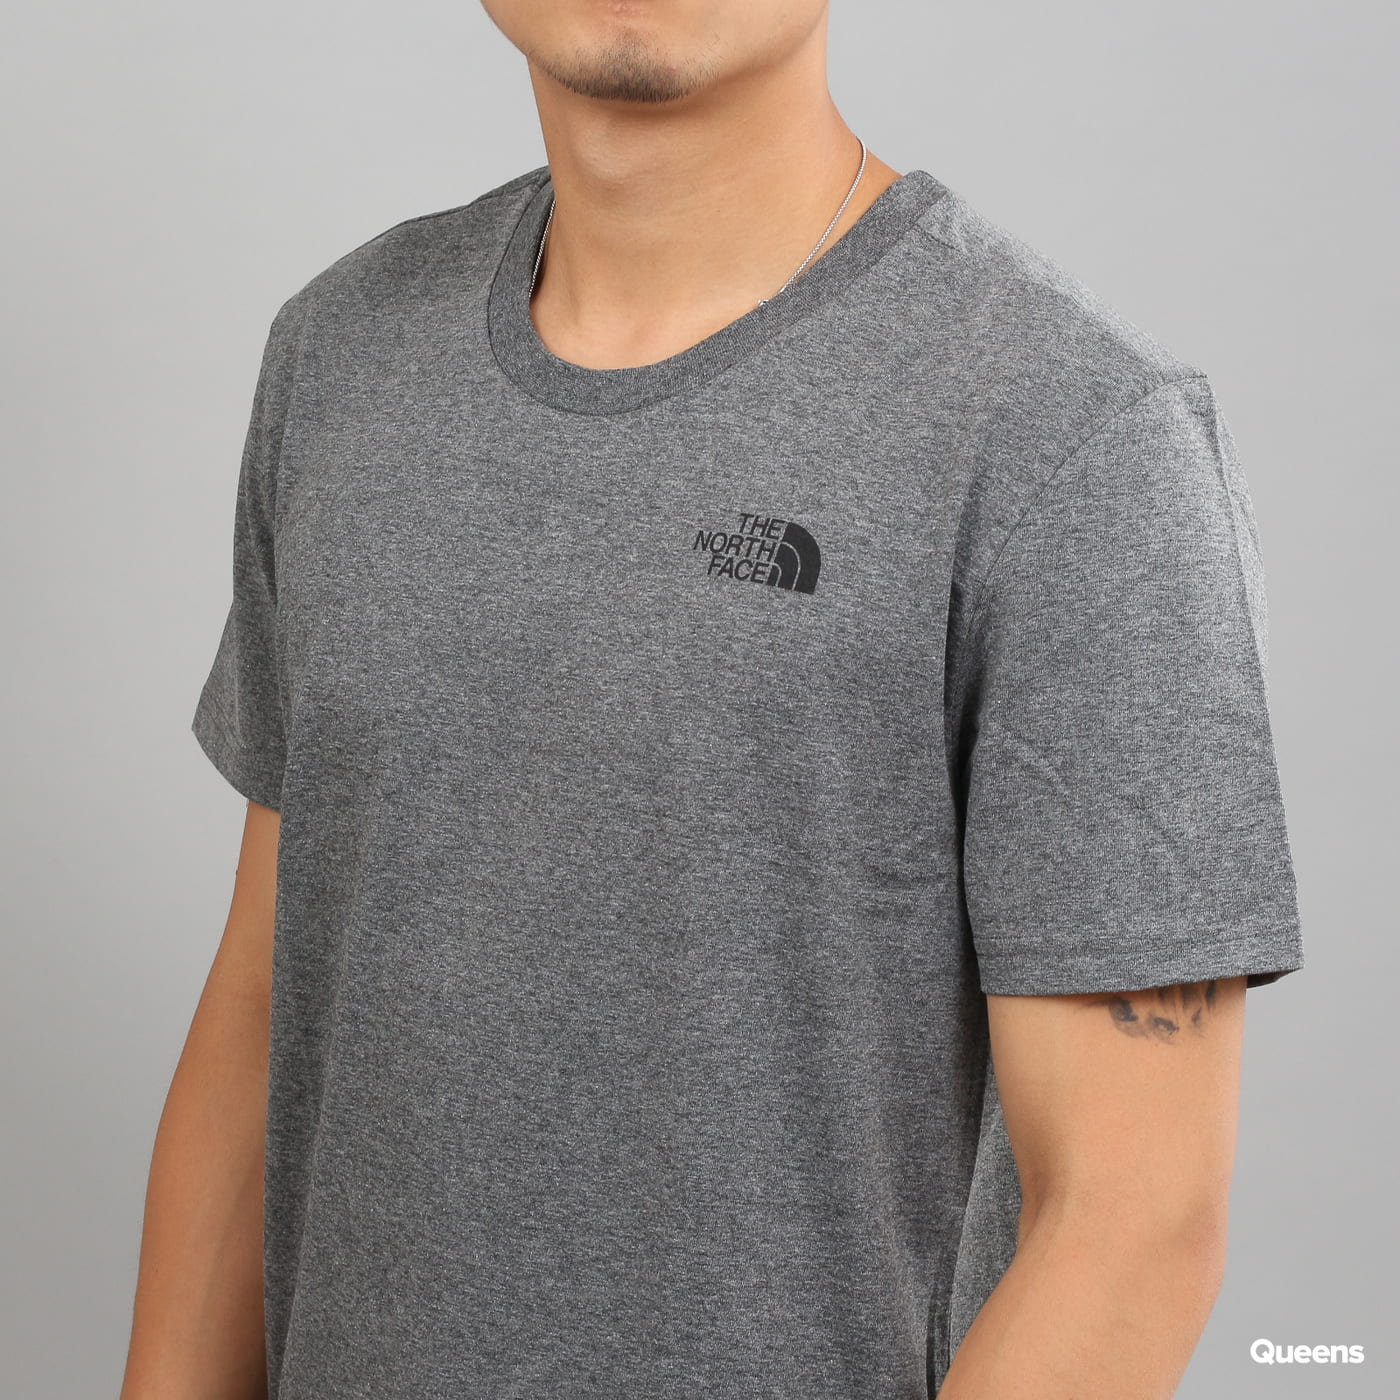 The North Face Simple Dome Tee melange dark gray